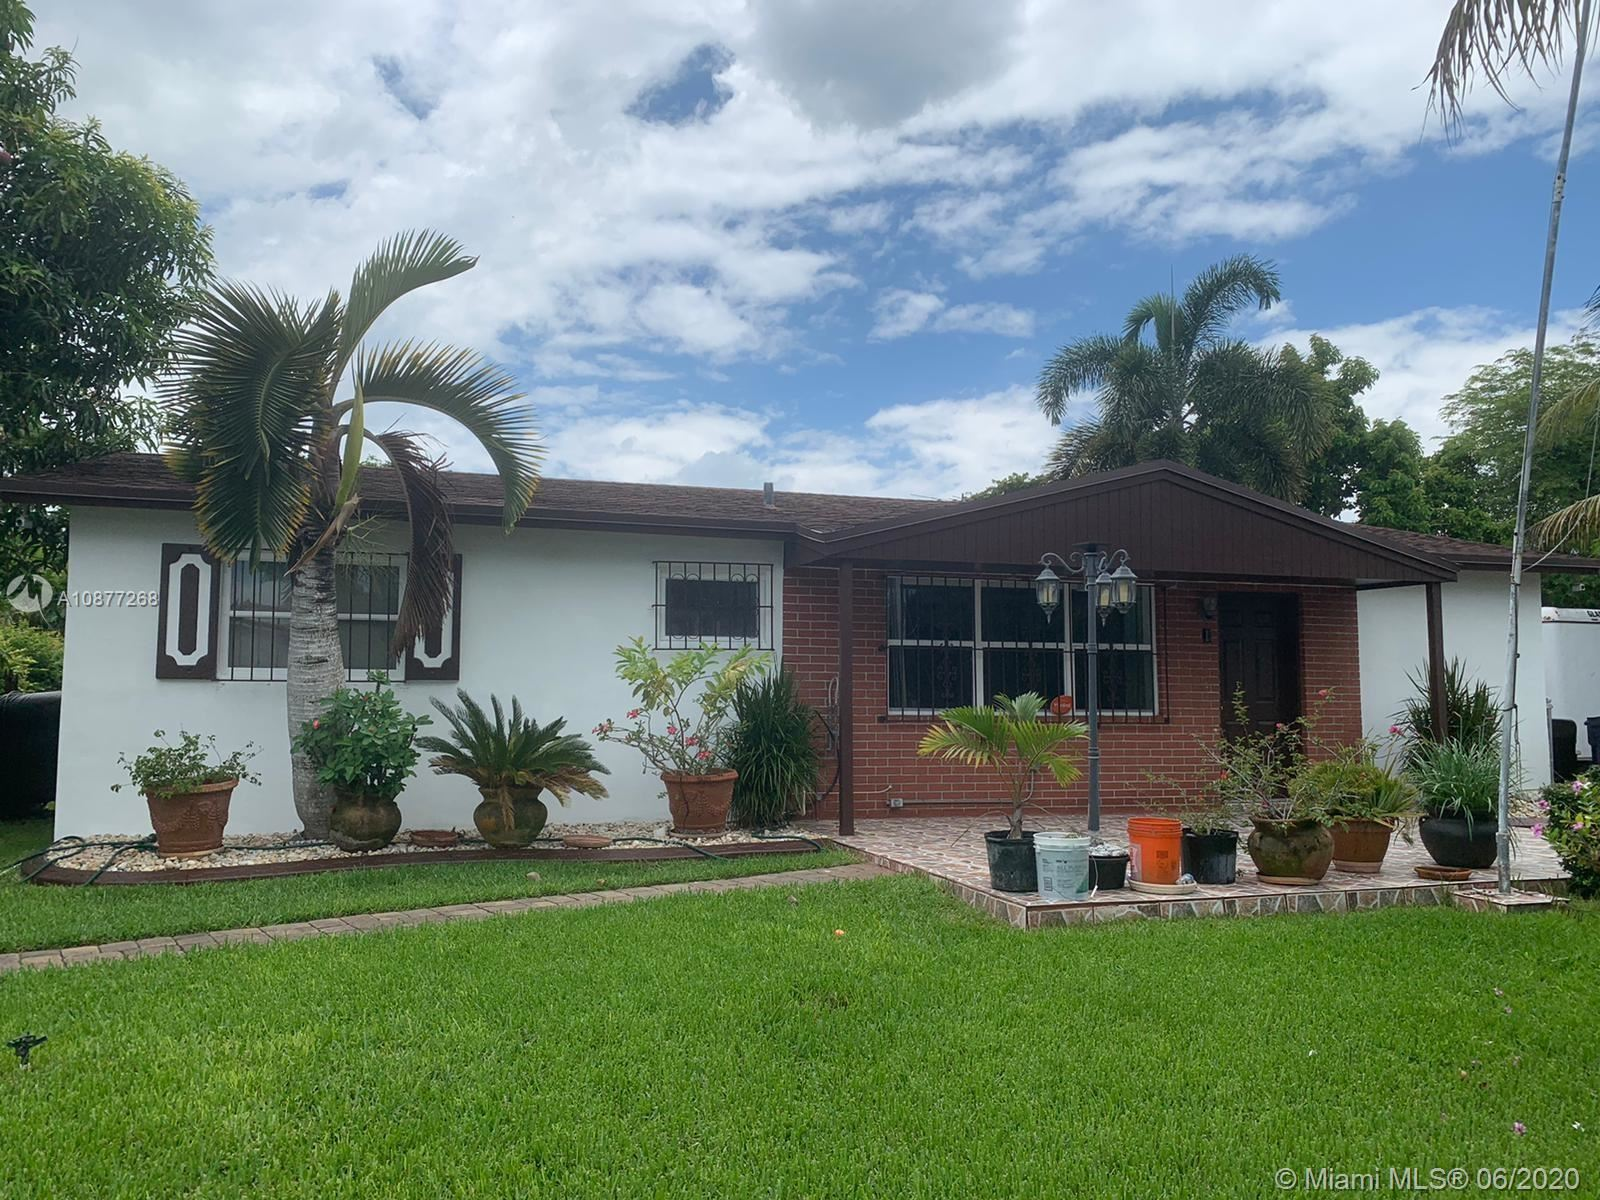 27834 SW 131st Ave, Homestead, FL 33032 - #: A10877268